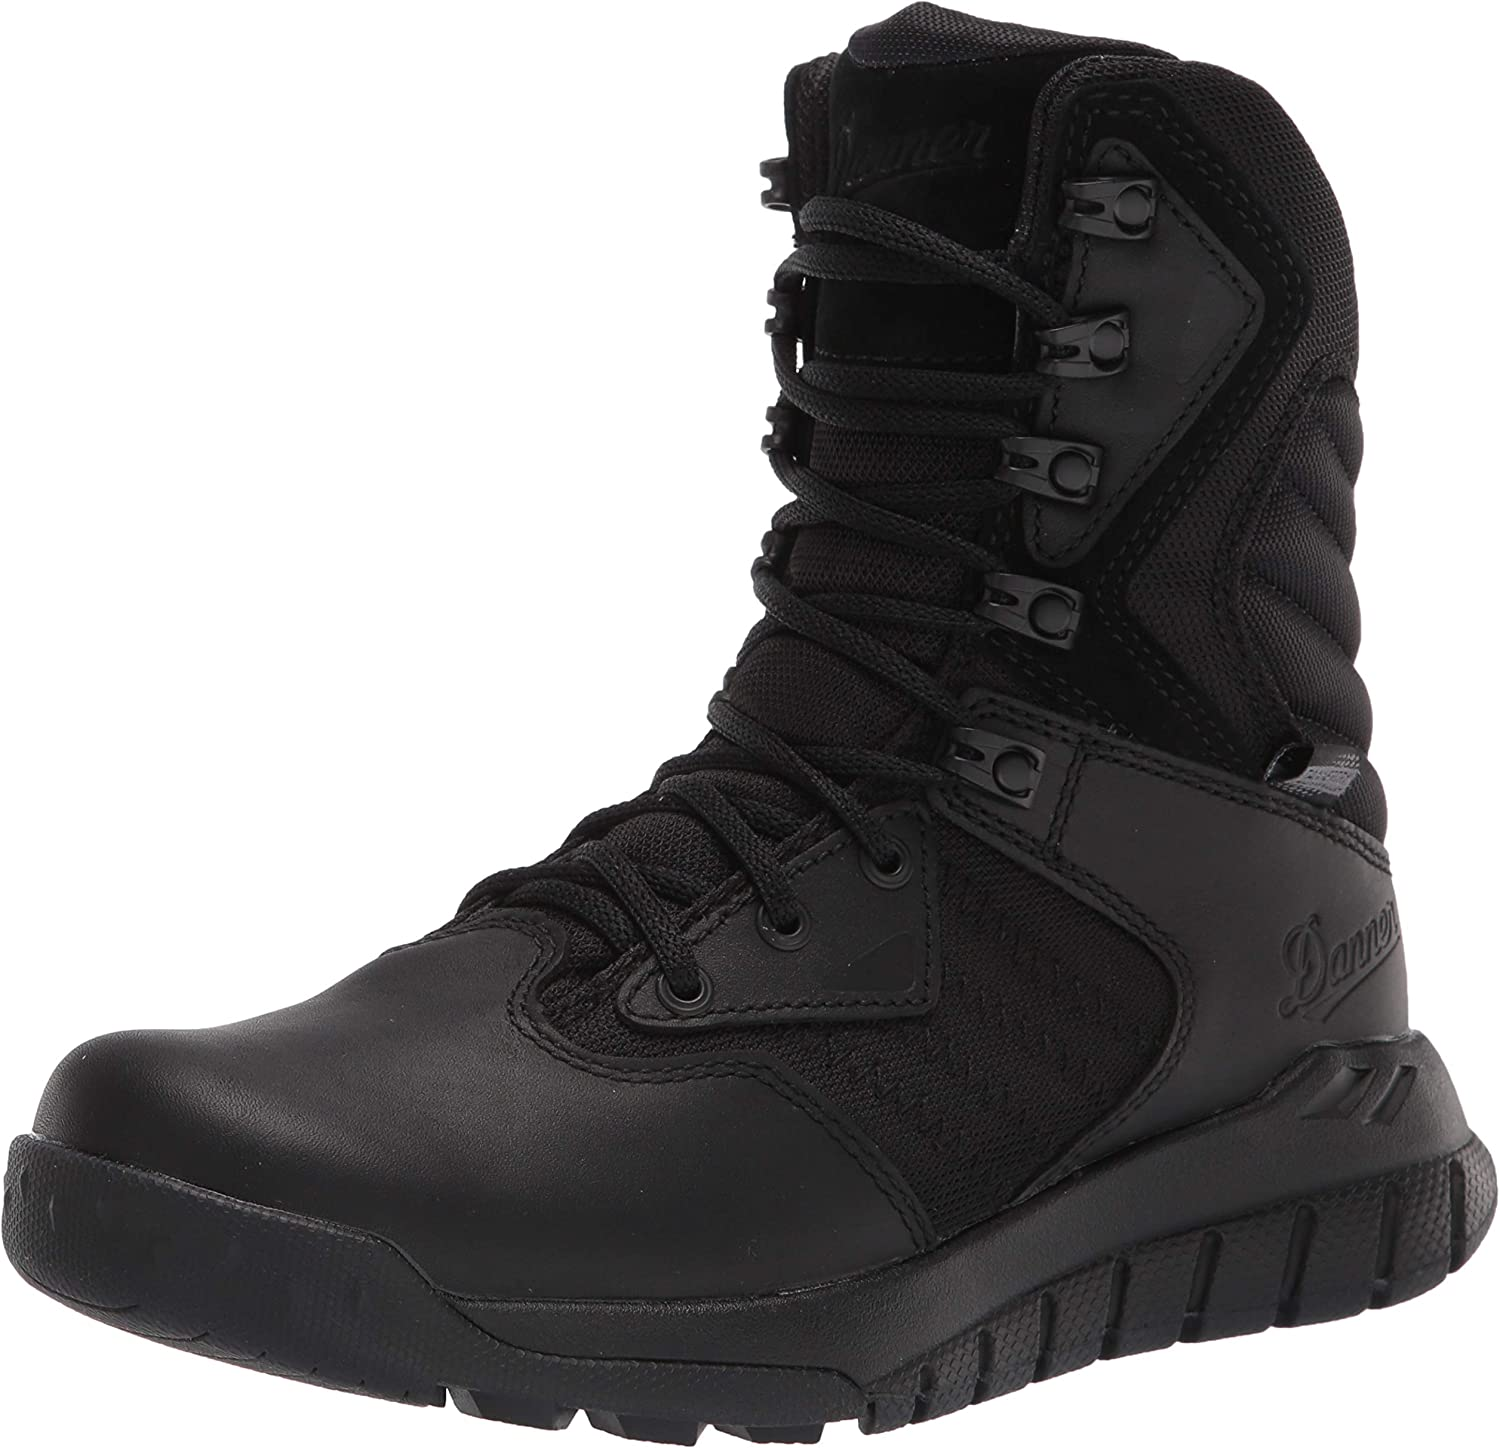 Danner Men's Military and Tactical Boot